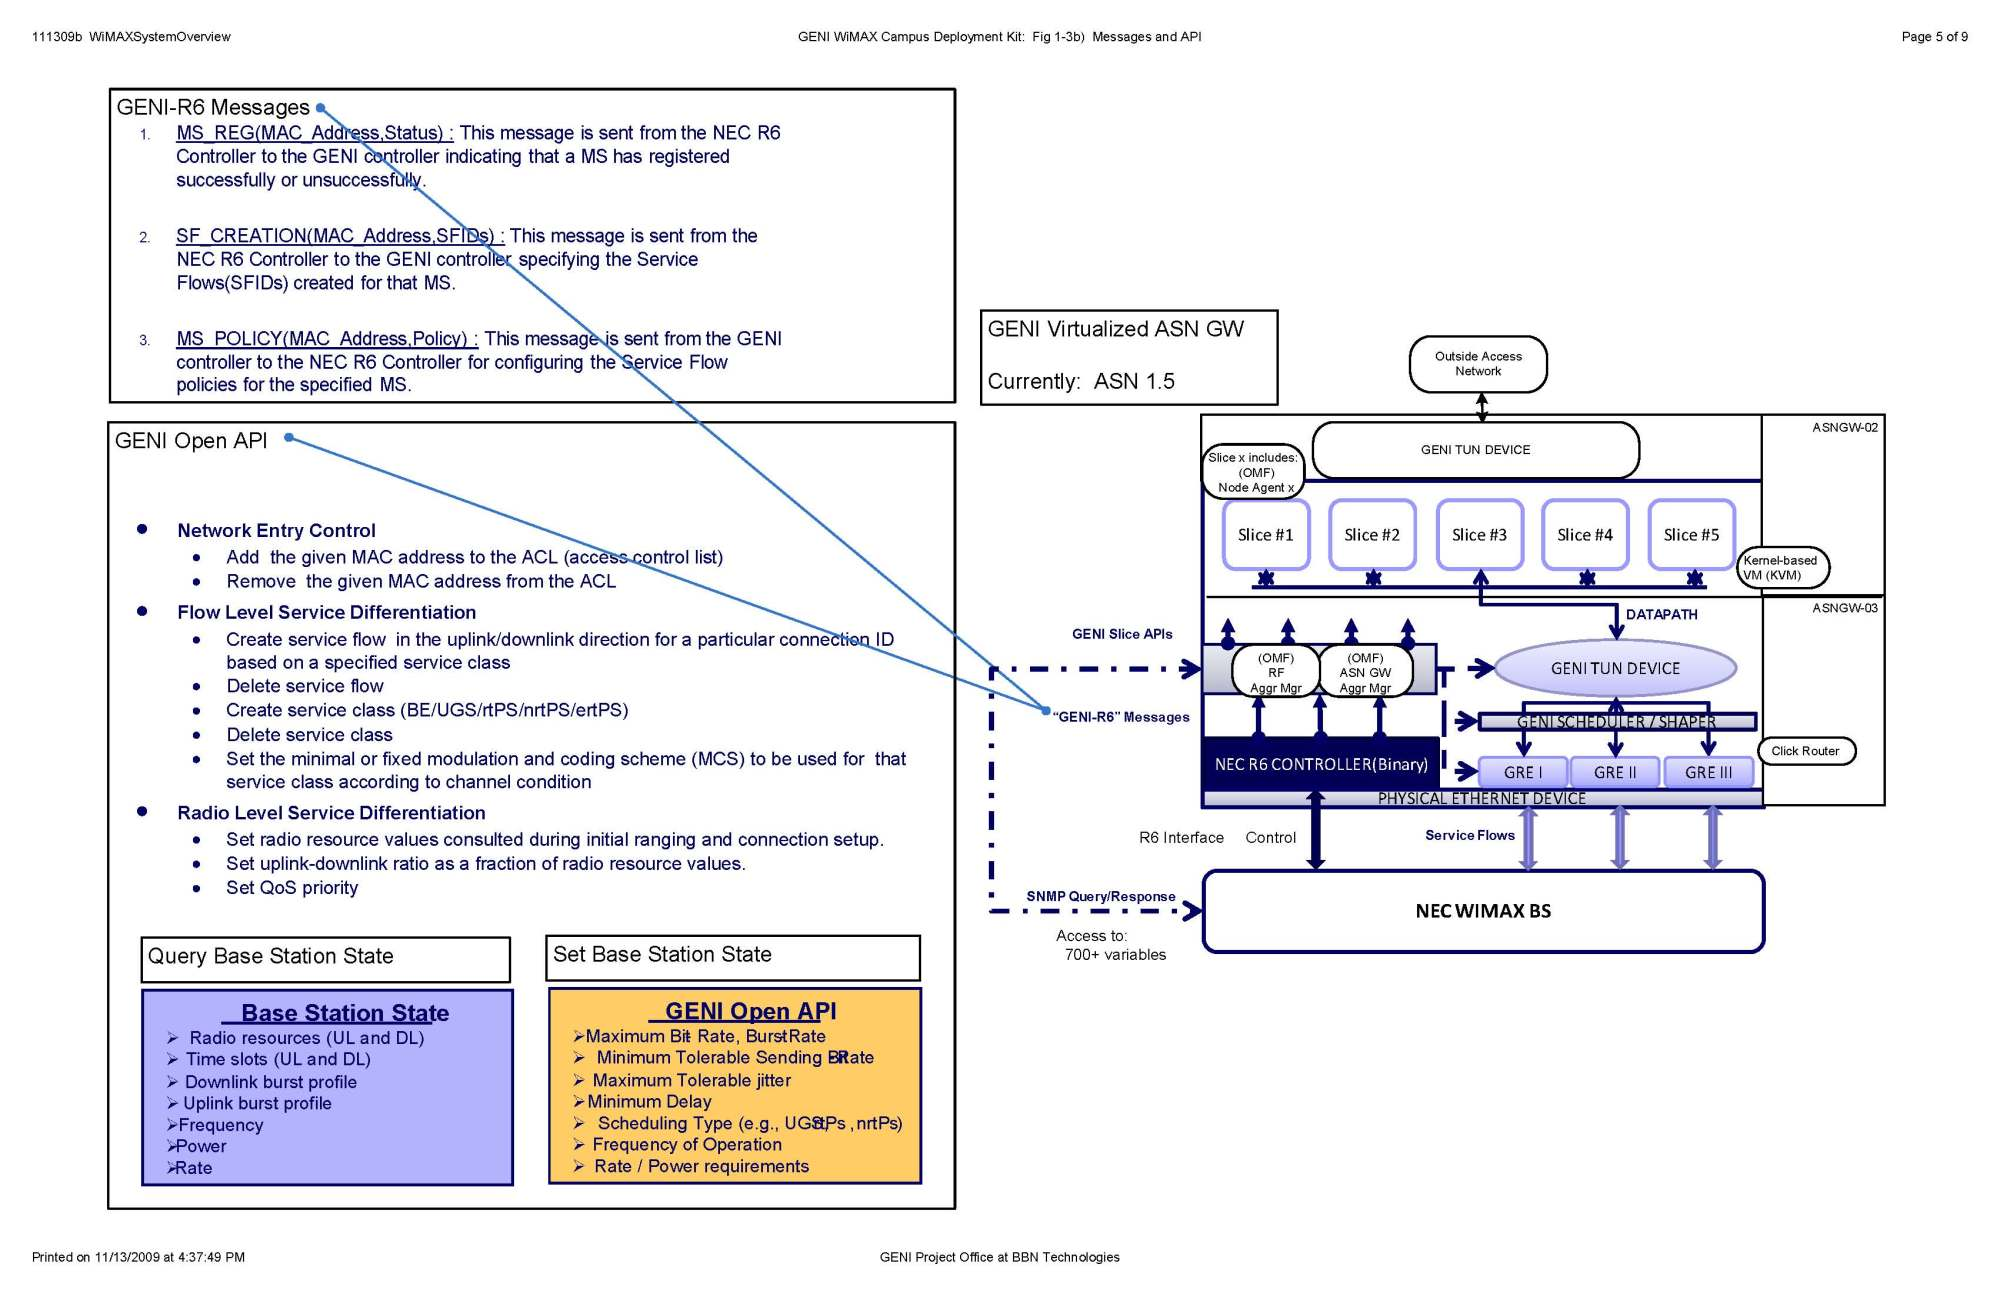 hight resolution of visio 111309b wimaxsystemoverview page 5 jpg 542 7 kb added by hmussman bbn com 9 years ago